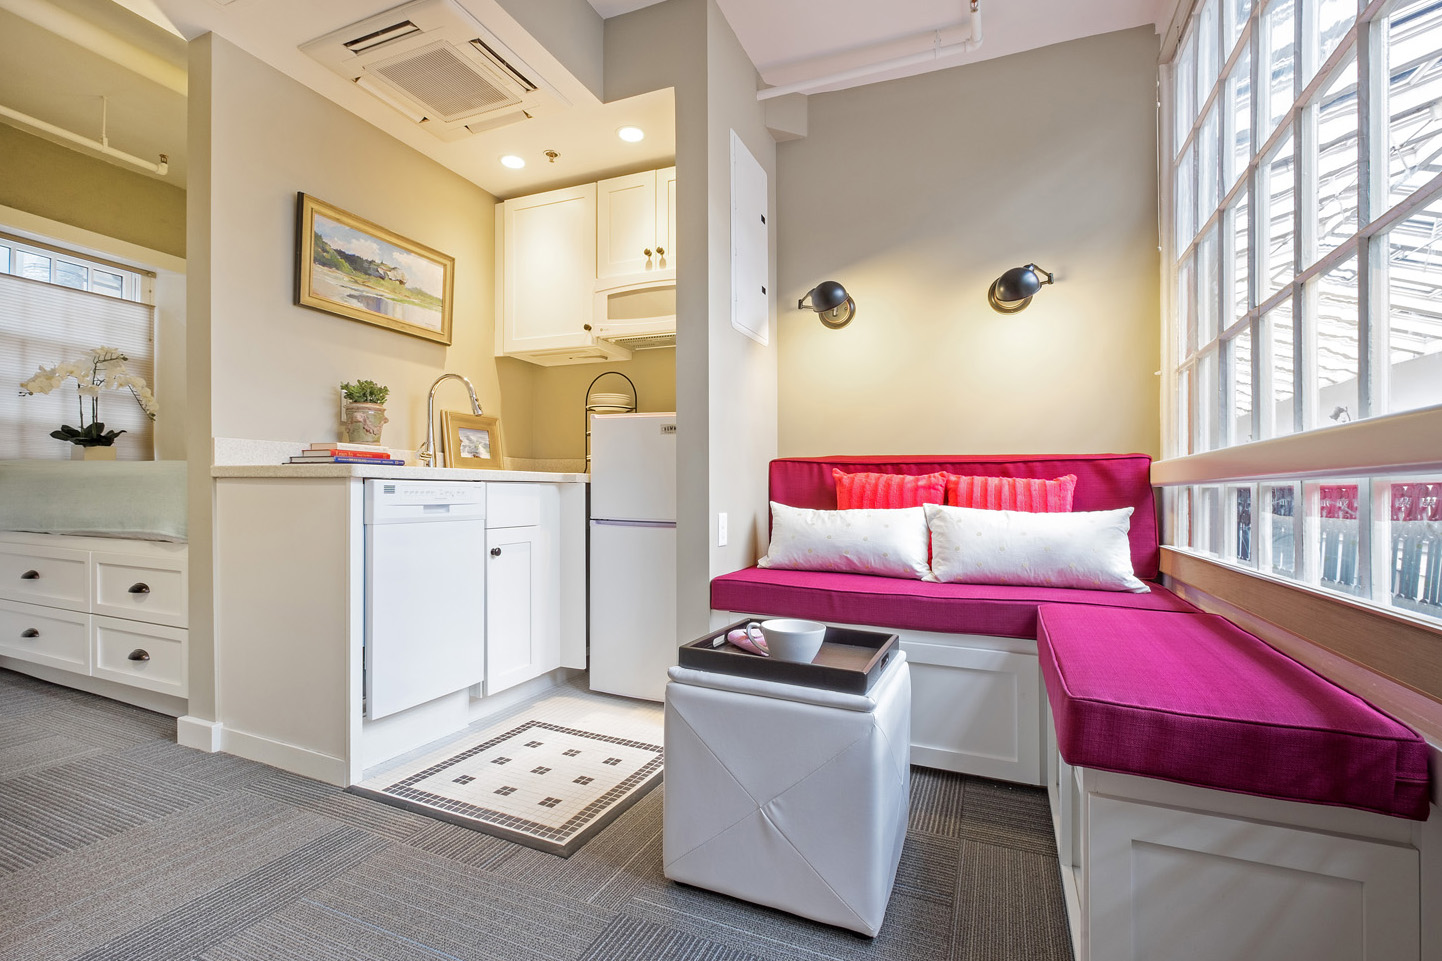 Micro Appartement Affordable Micro Lofts In A Greek Revival Style Historic